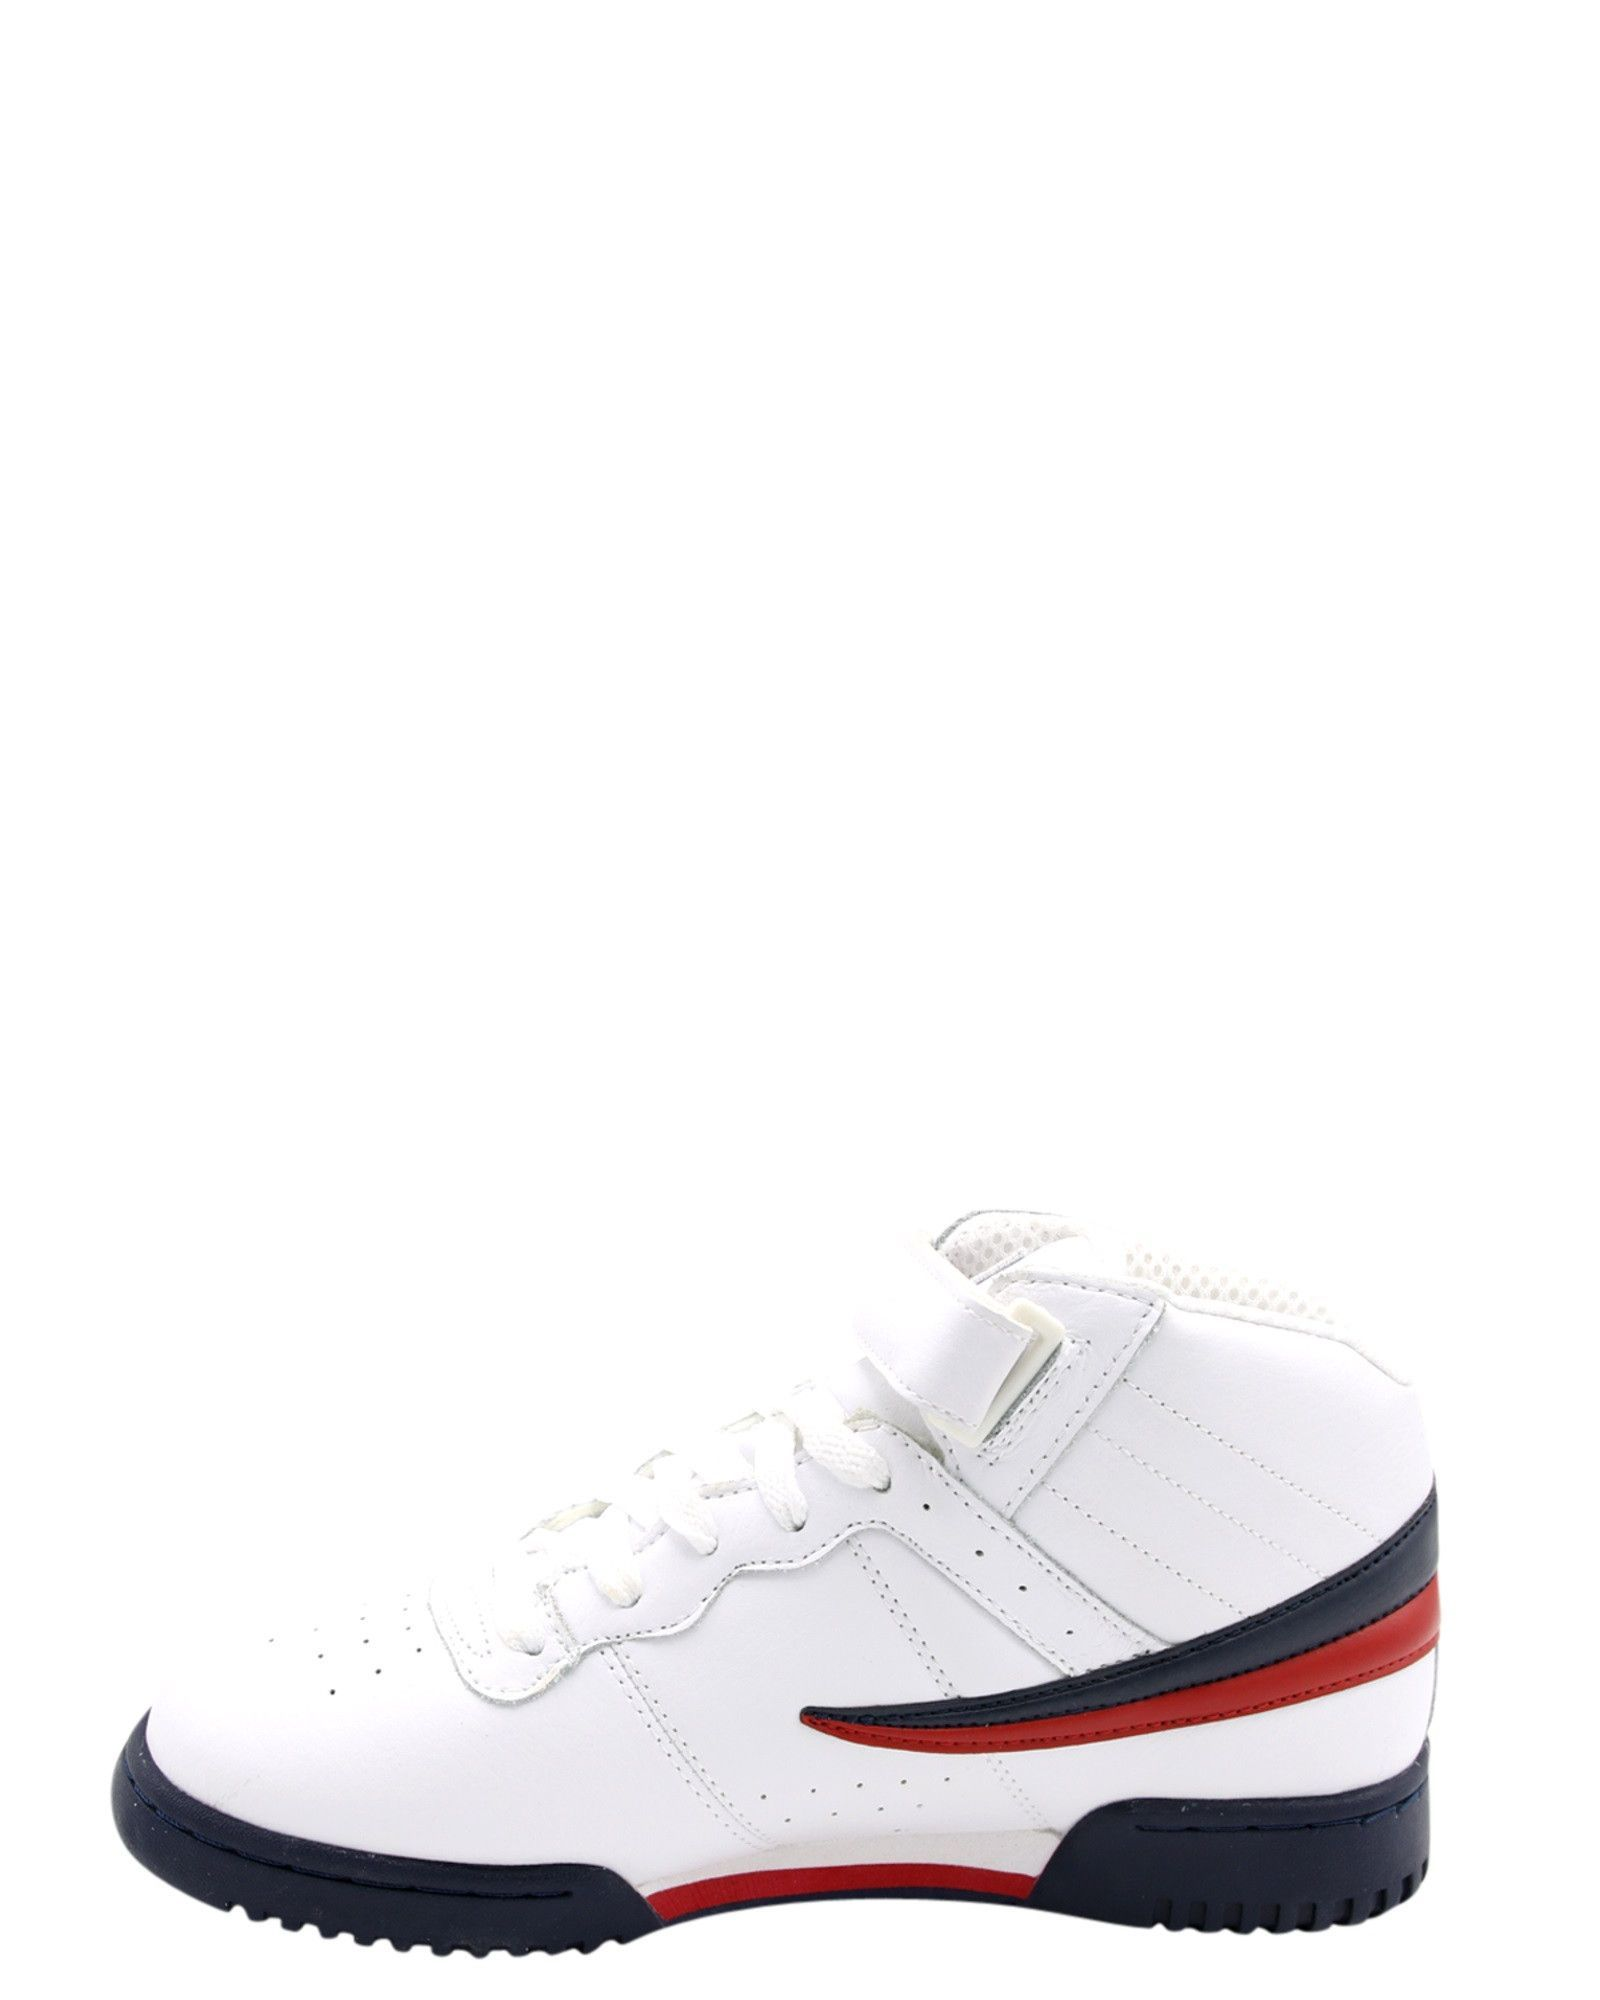 c3b27fd6476a Perforated leather upper in white with navy and red - Mid cut construction  - Lace